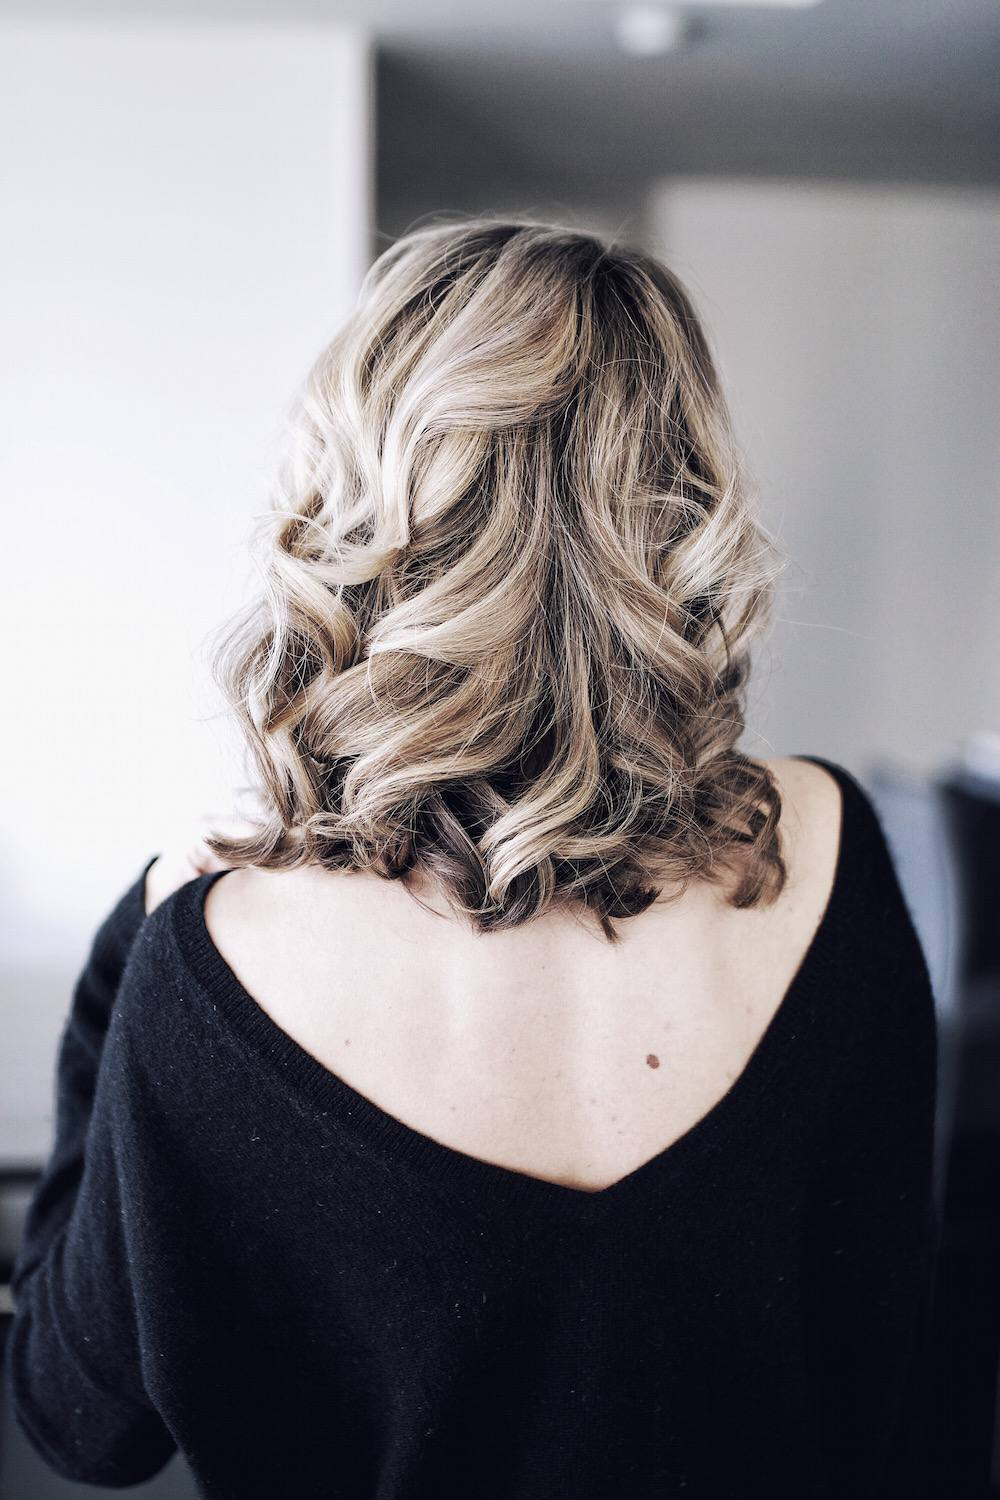 Hair Inspiration Blonde Balayage Curls 01